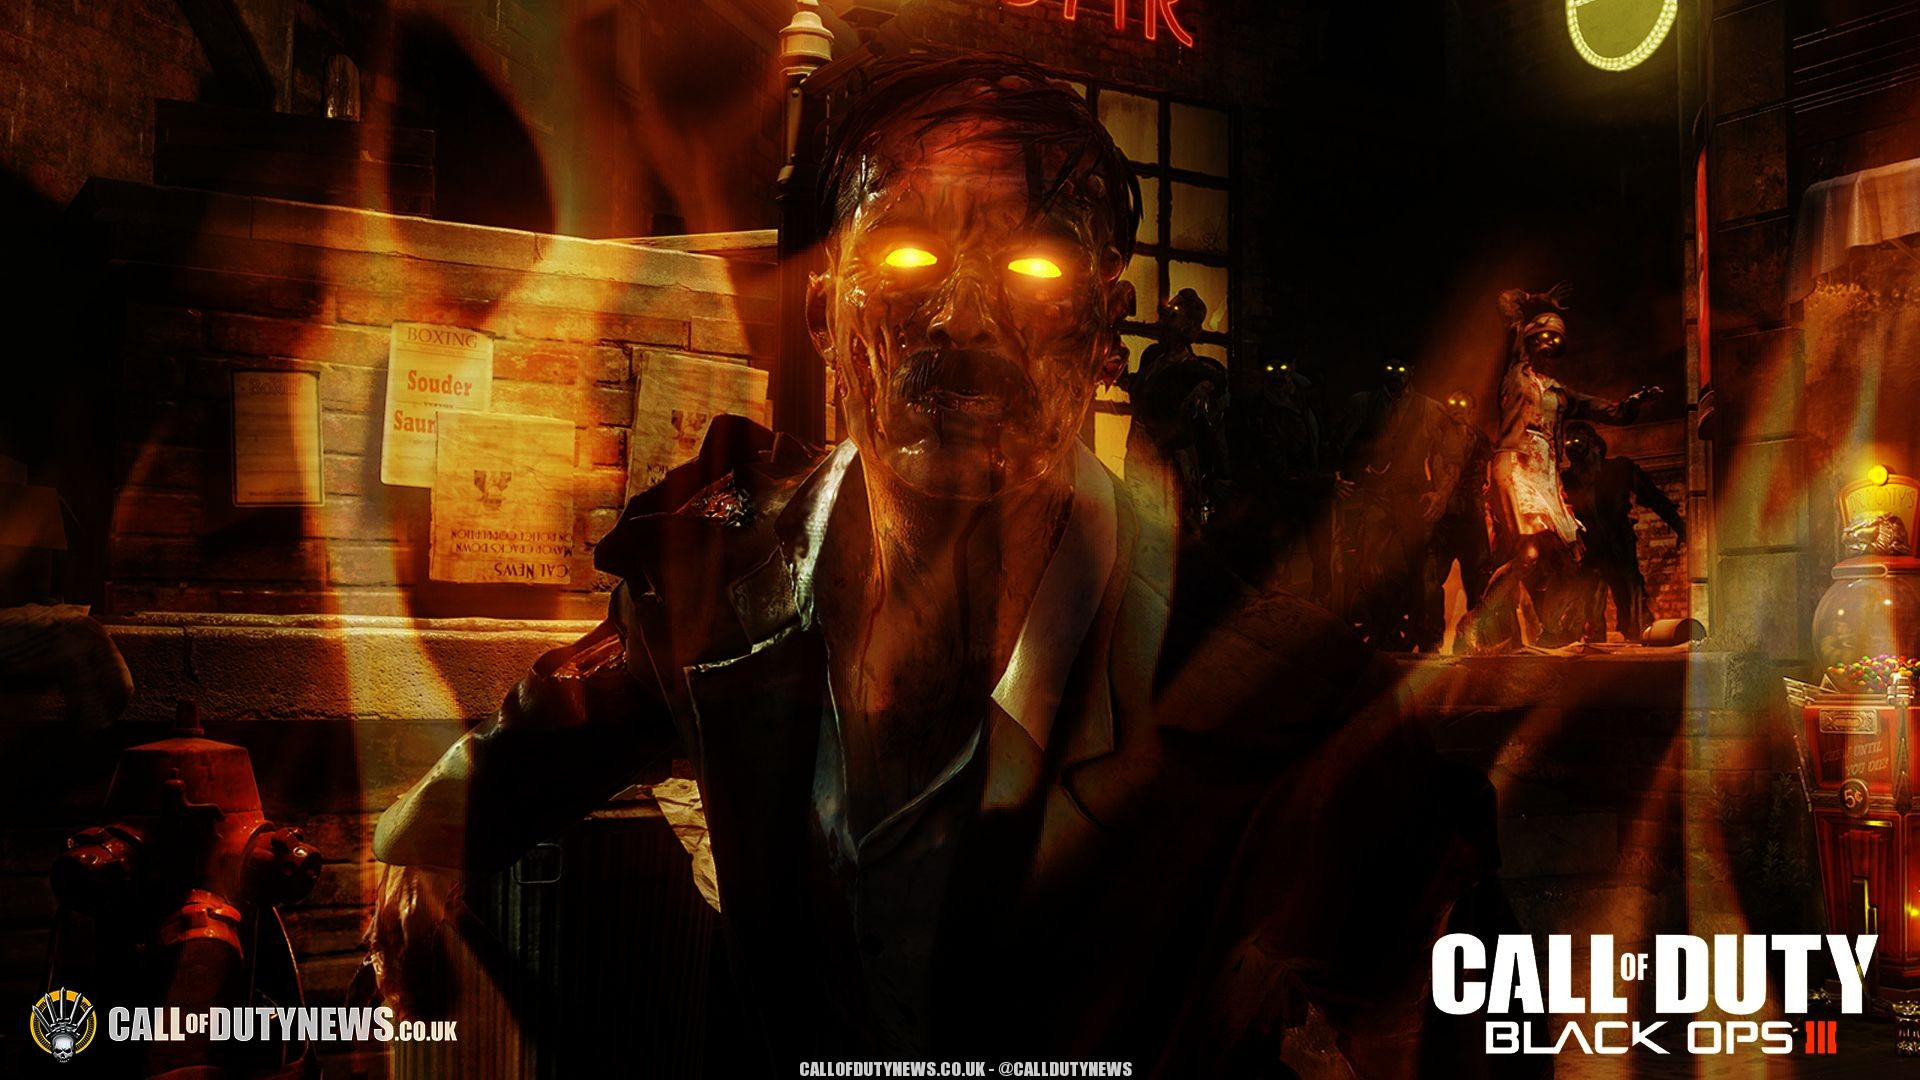 Call Of Duty Bo3 Wallpapers: Black Ops 3 Zombie Wallpaper